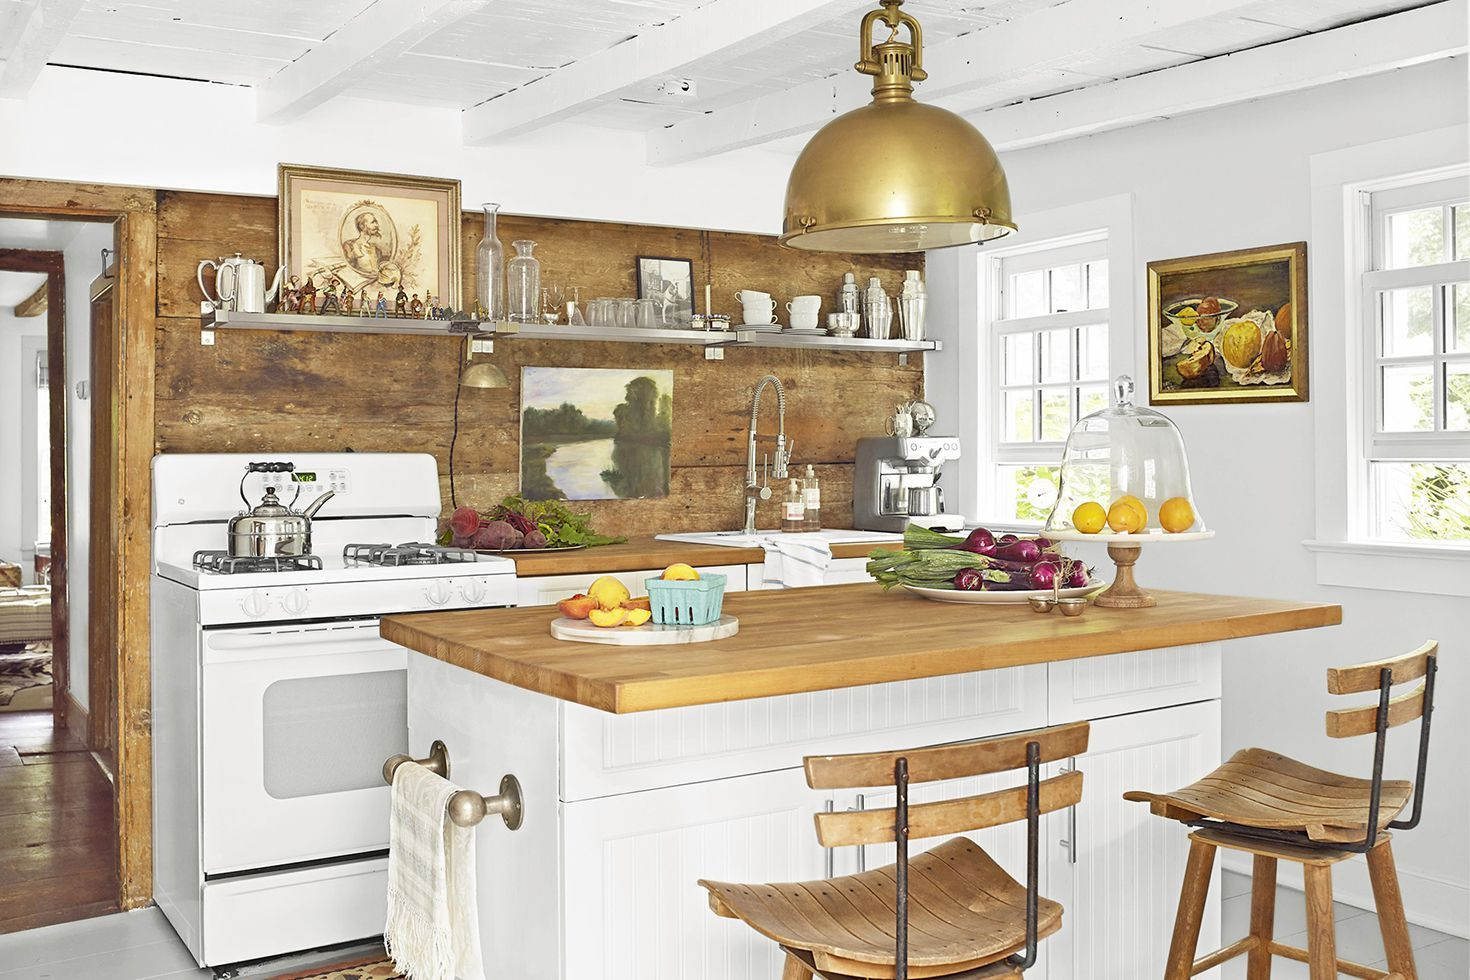 Butcher Block Countertops Cost Pros And Cons And More